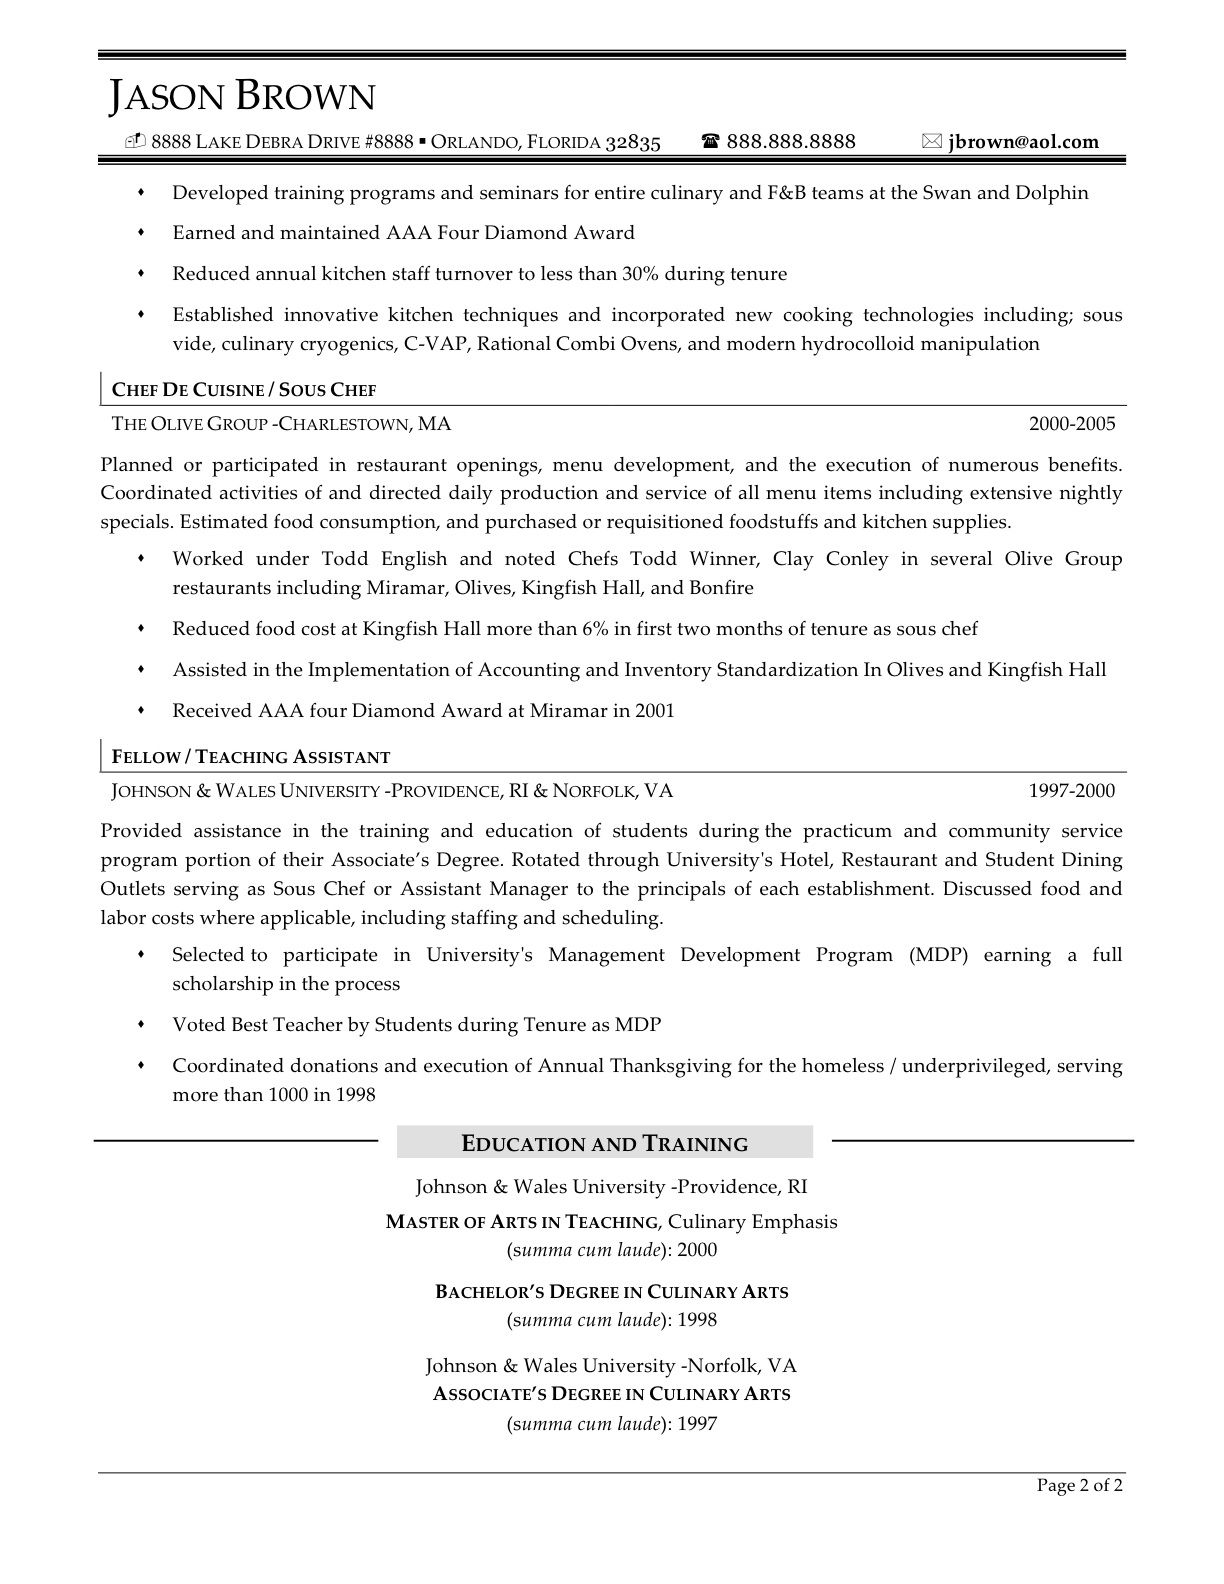 Executive Chef Resume Template Beauteous Chef Cook Resume Examples  Httpwwwjobresumewebsitechefcook